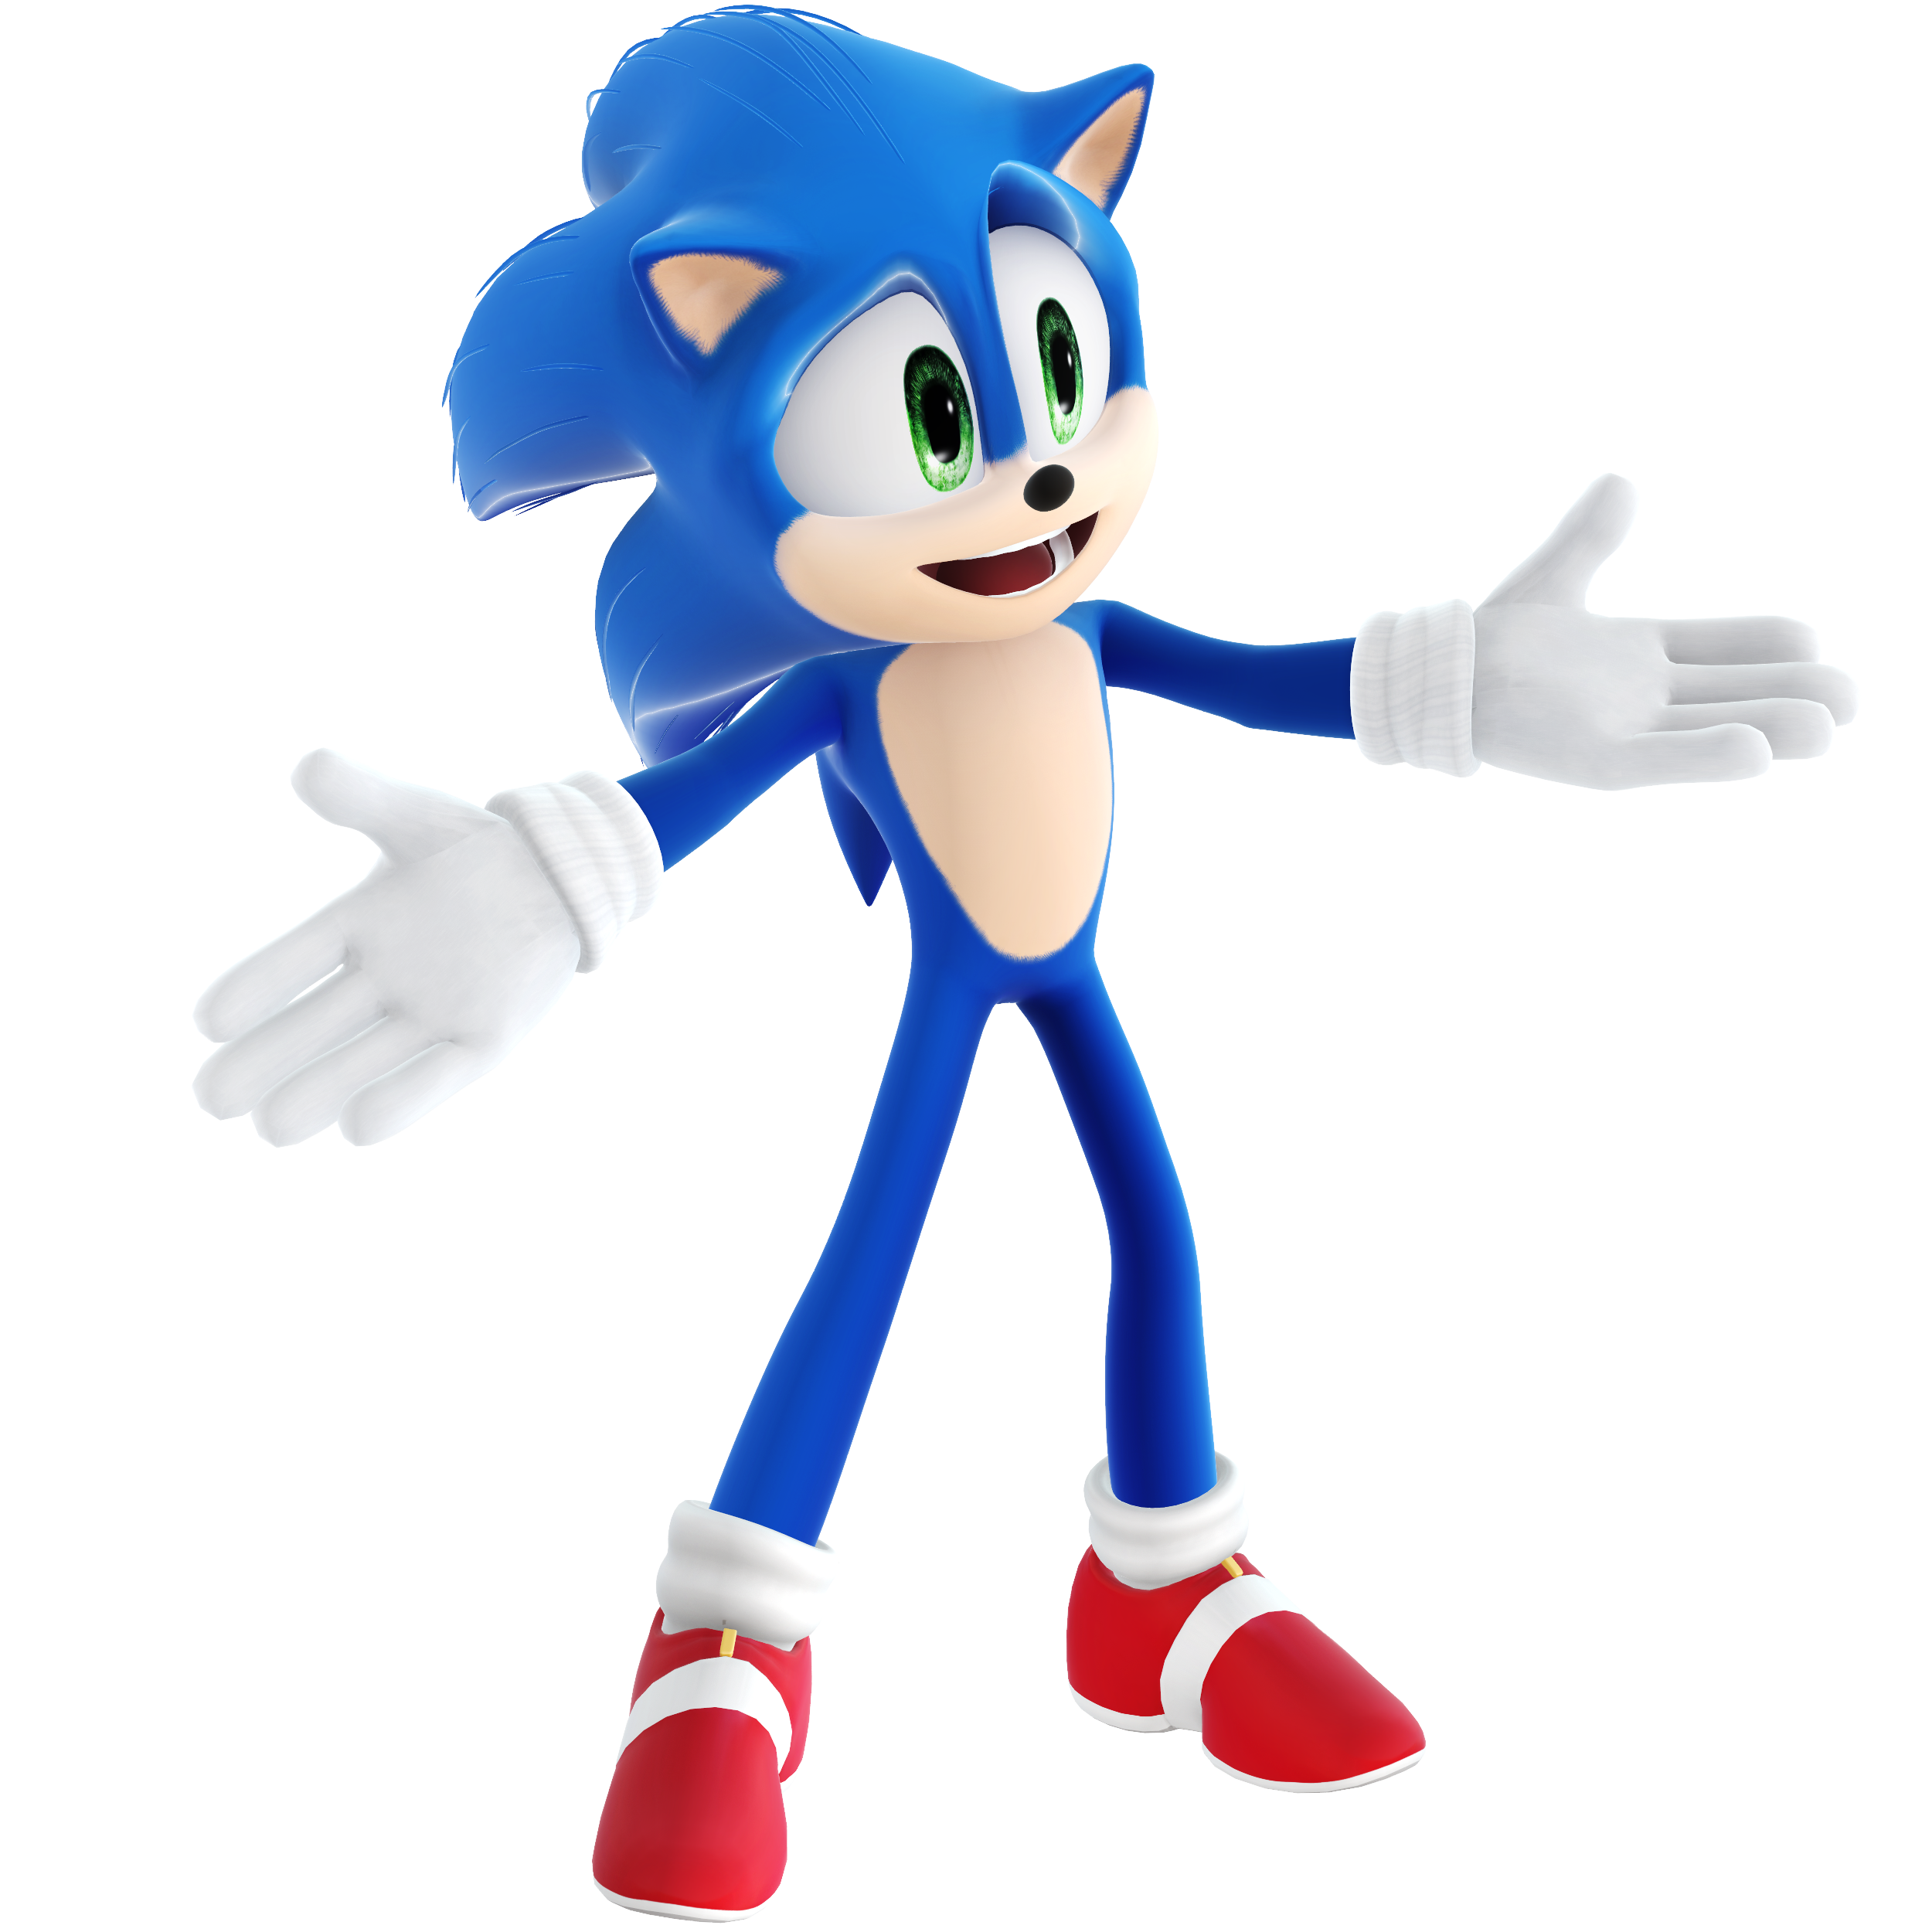 Movie Sonic Render Variant 8 By Vexikku On Deviantart